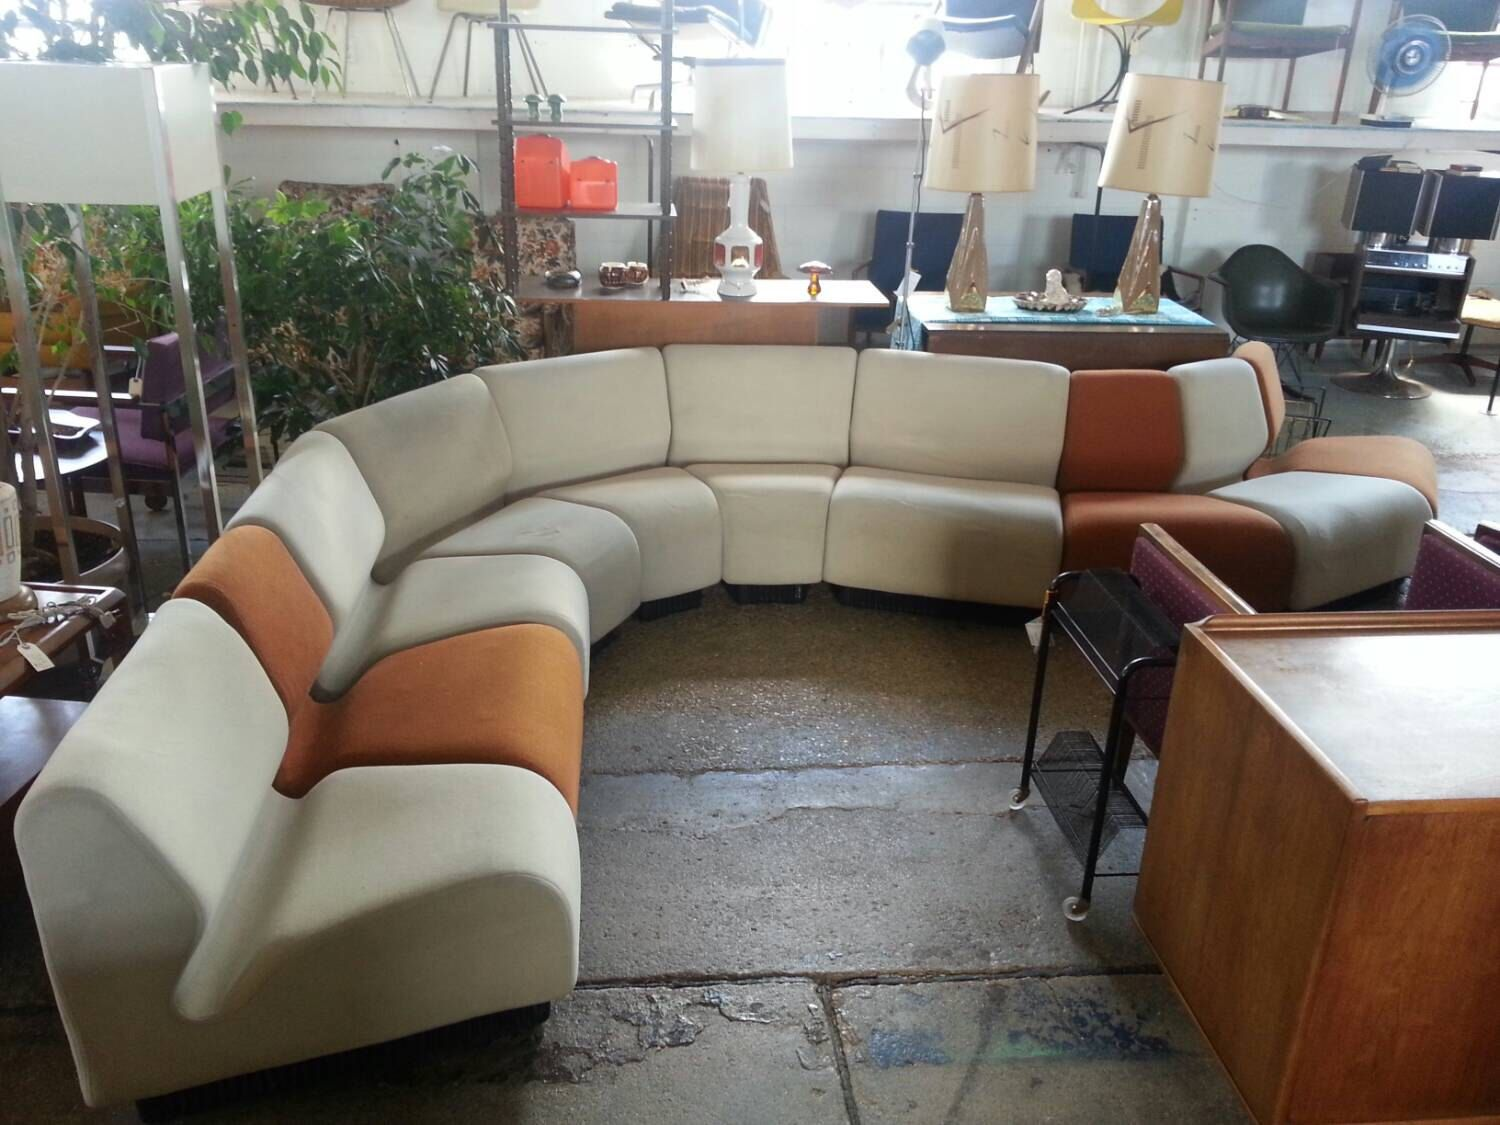 Amazing Vintage Chadwick Sectional Sofa For MId Century Herman Miller From  My Etsy Shop! Also From Retro Attics In Bay City MI